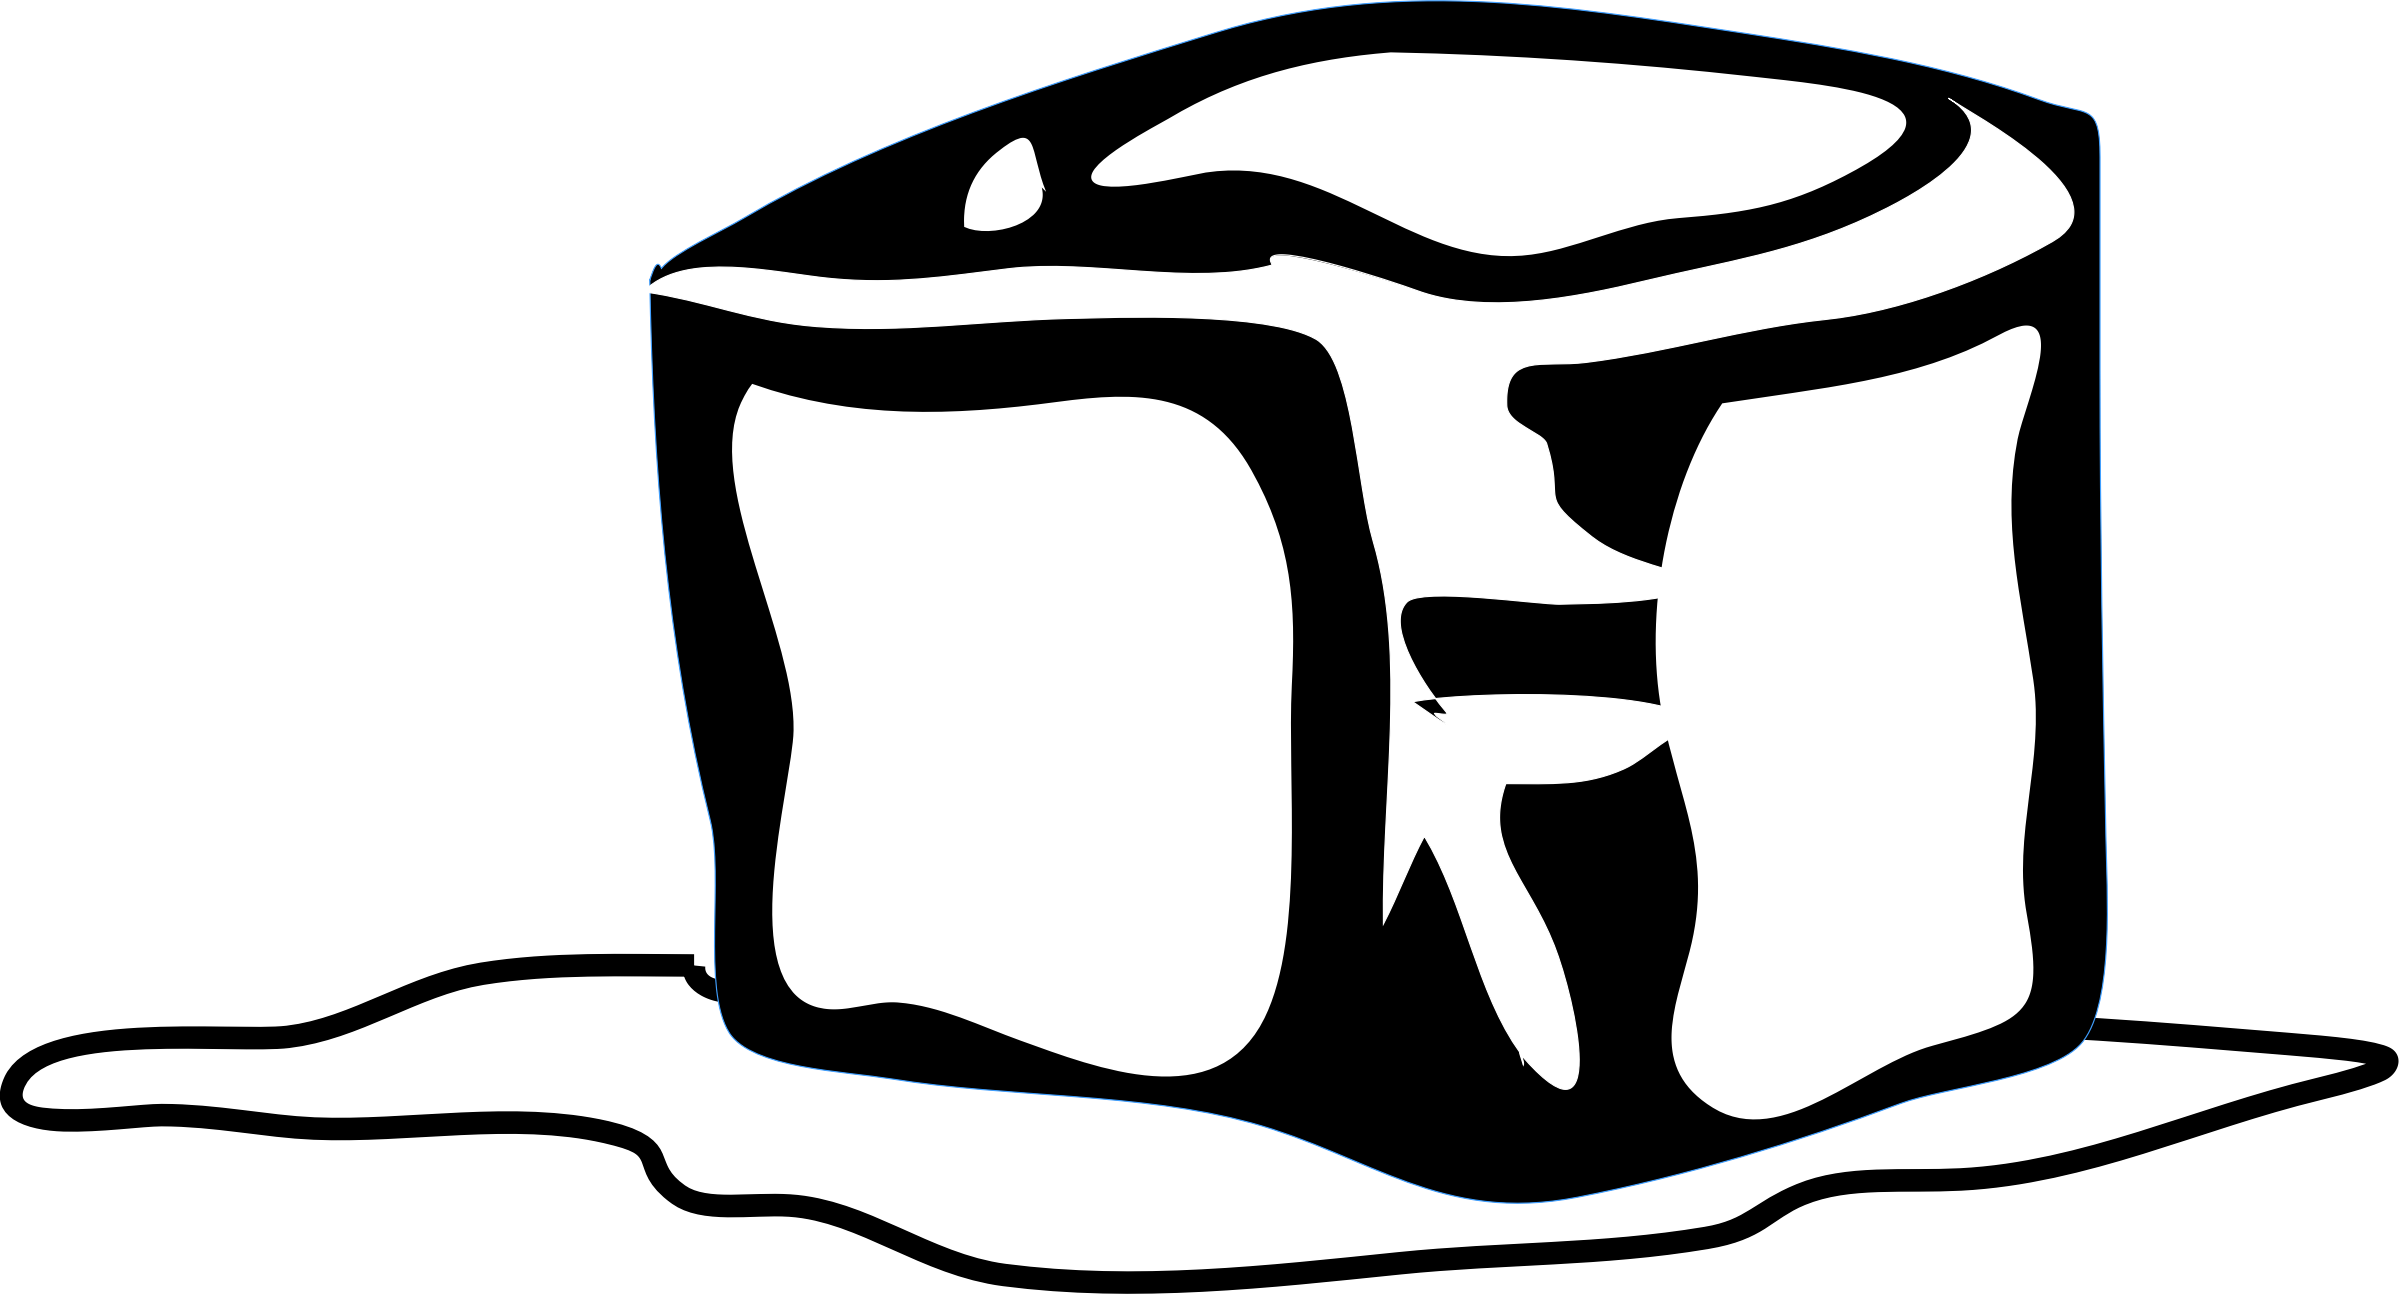 Cube clipart drawing. Ice cubes black and